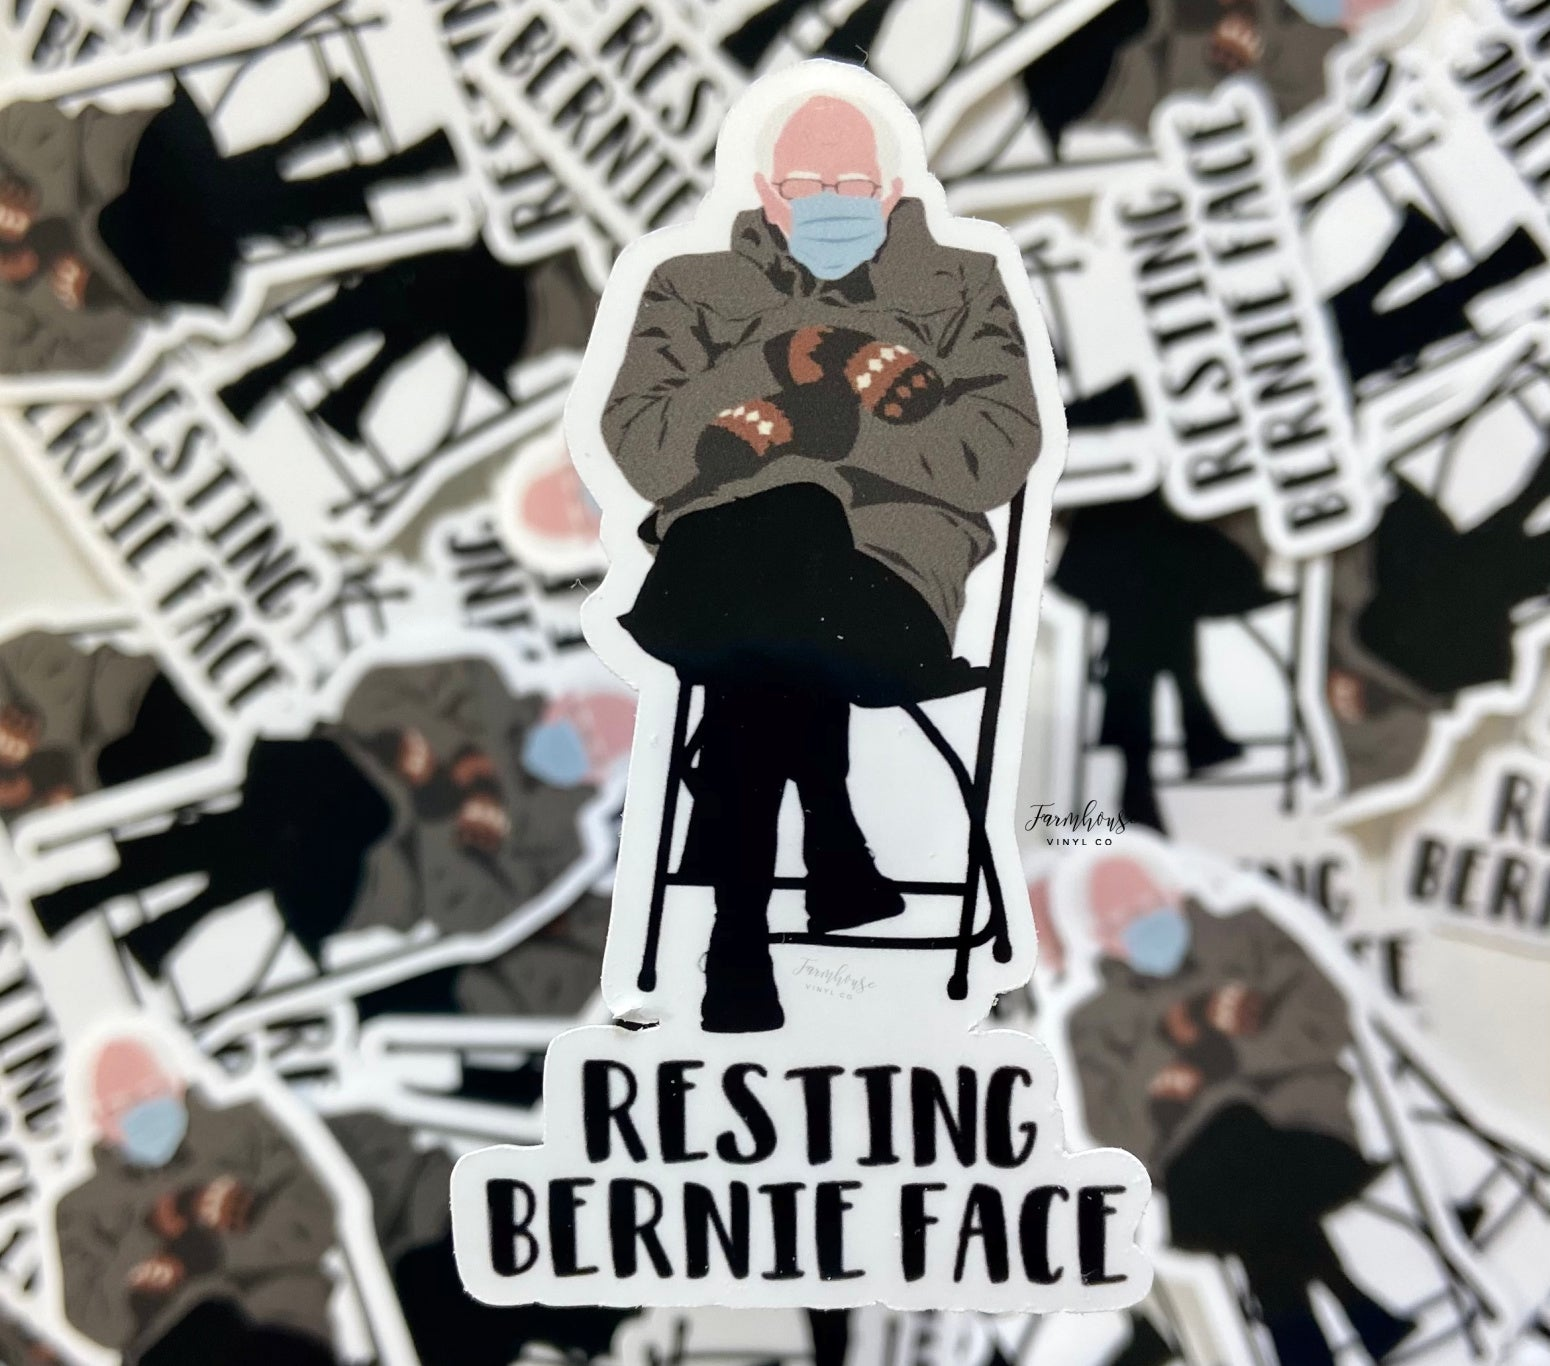 Resting Bernie Face Sticker or Magnet